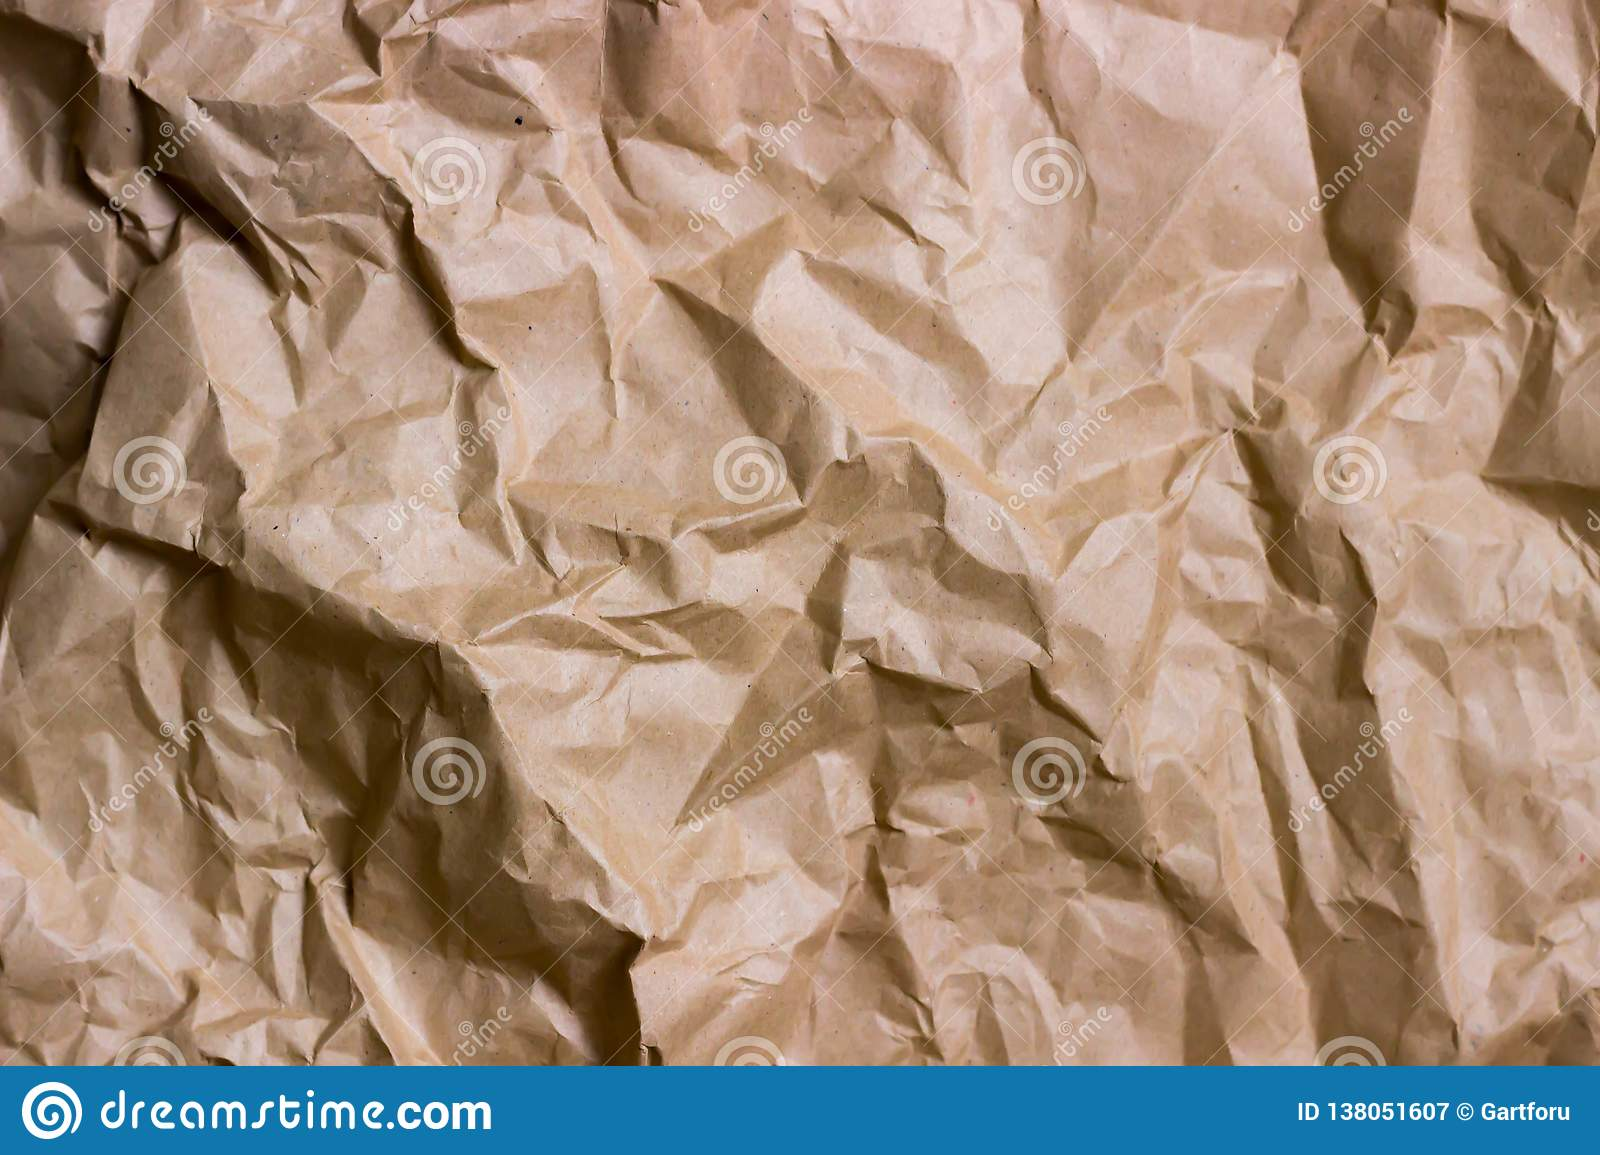 Brown wrinkle recycle paper background. Texture of crumpled paper. Texture of rumpled old paper close-up